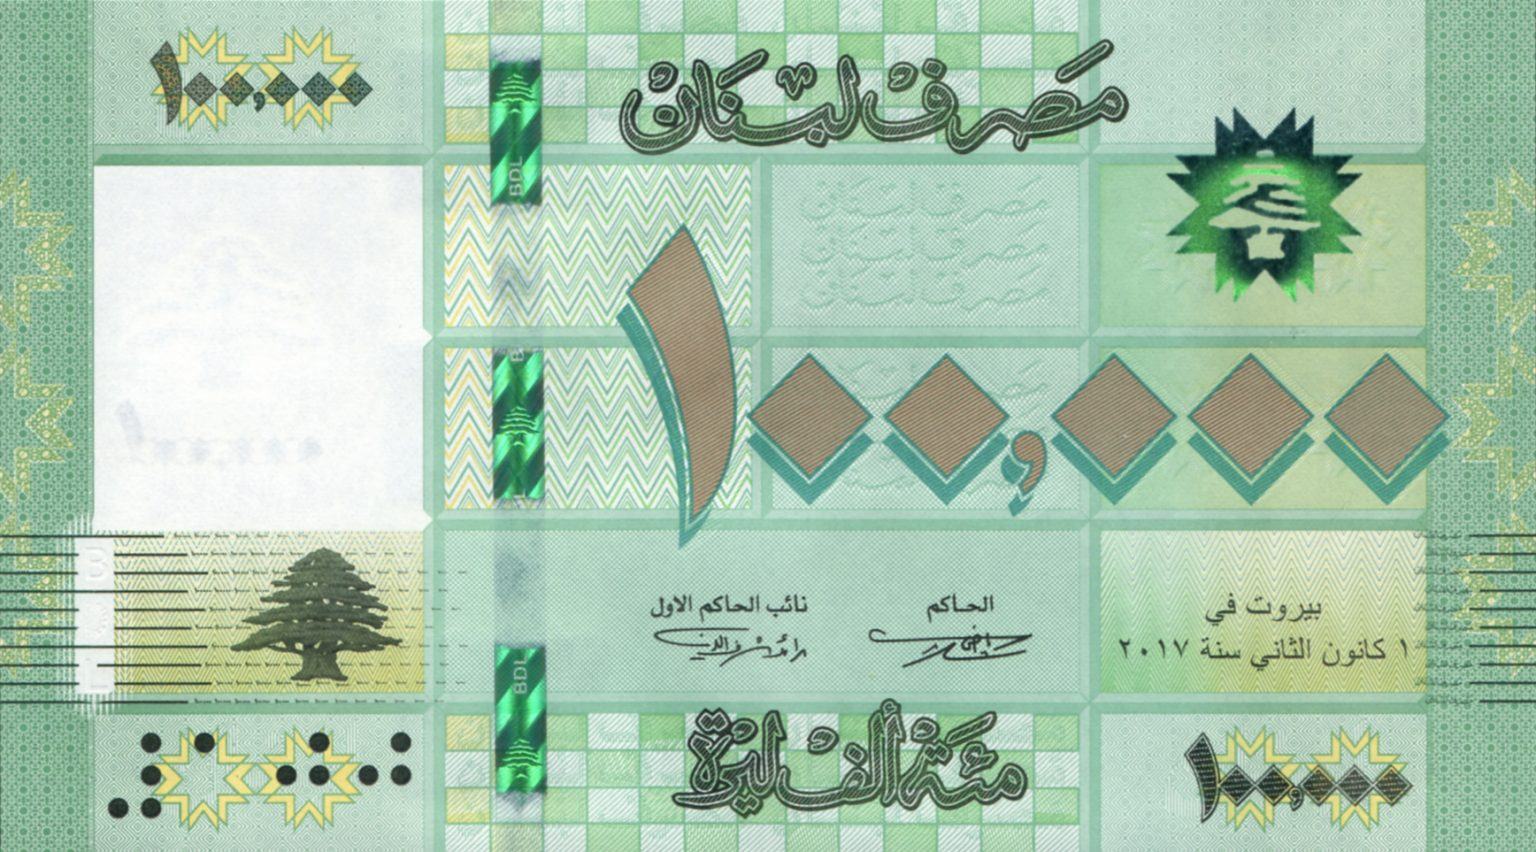 A LBP 100,000 banknote with a green security thread.